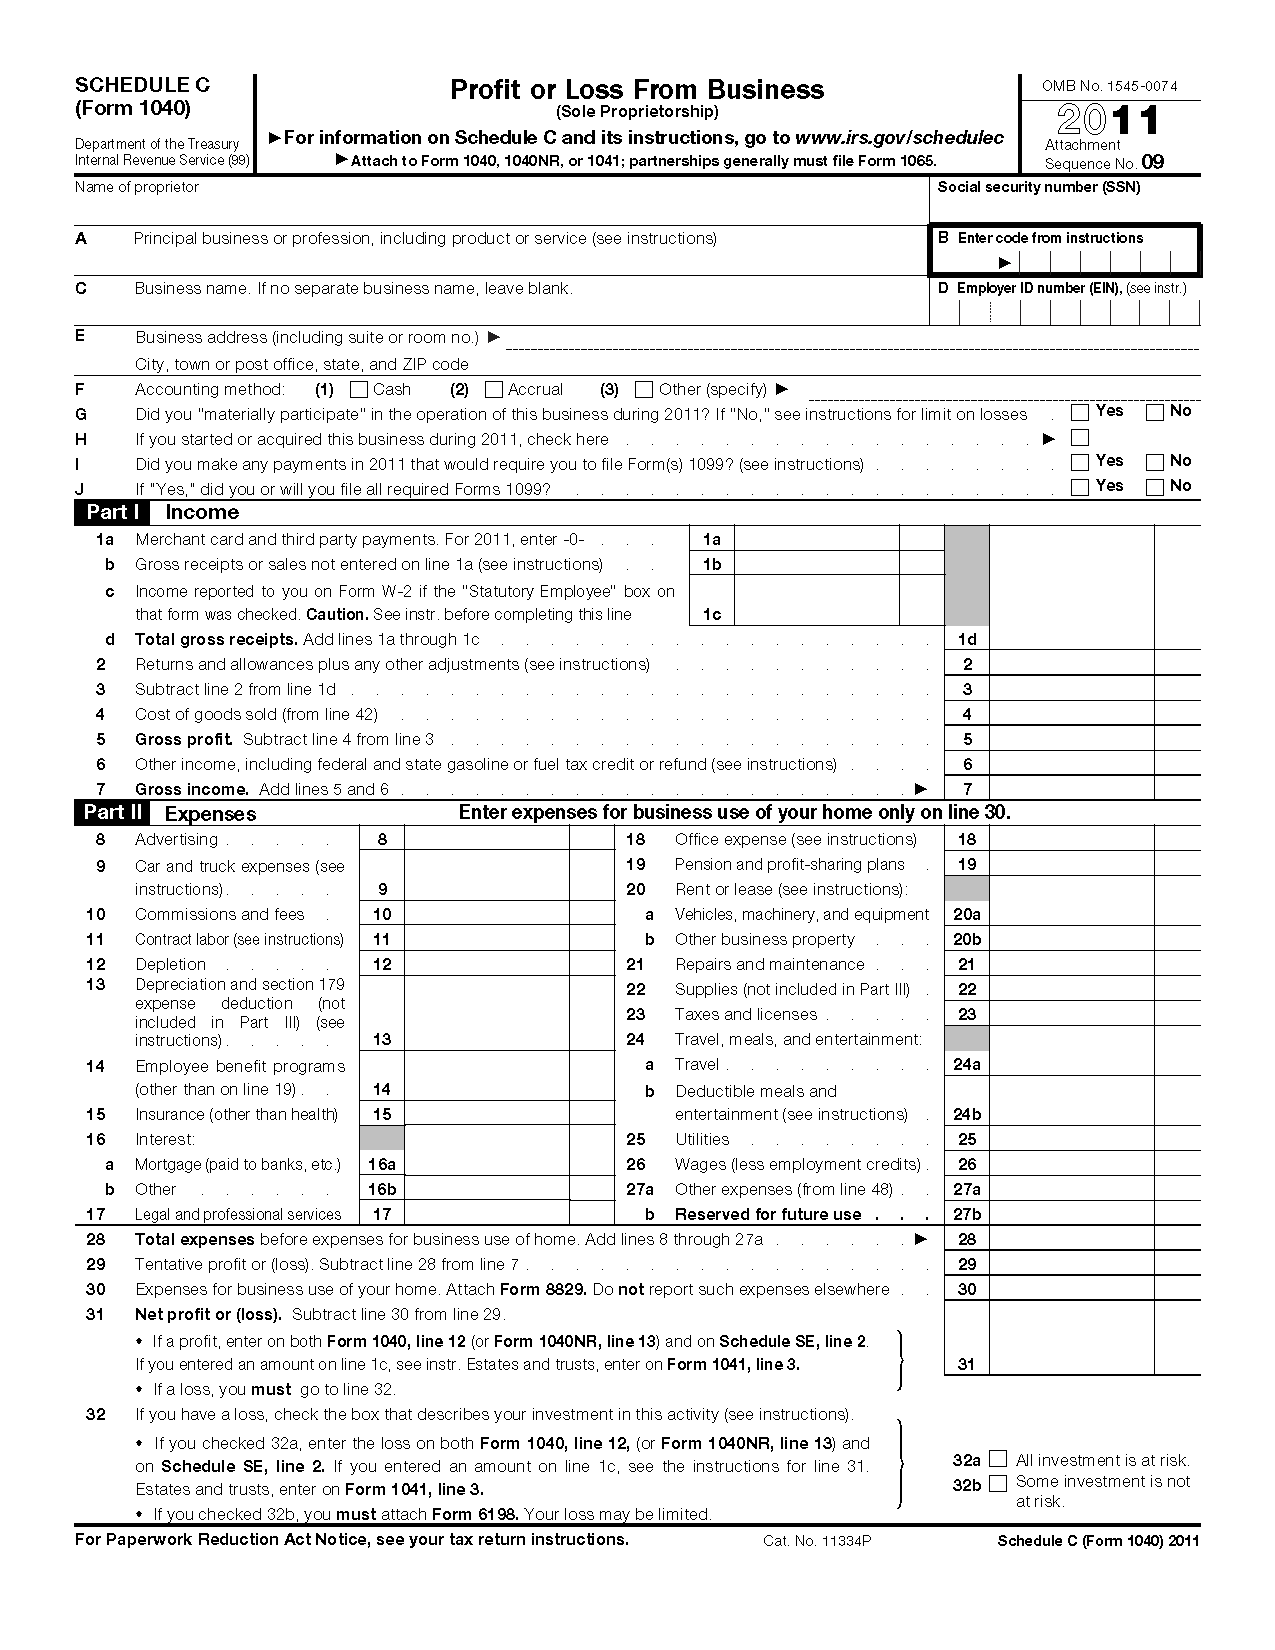 Form Schedule C Profit Or Loss From Business Sole